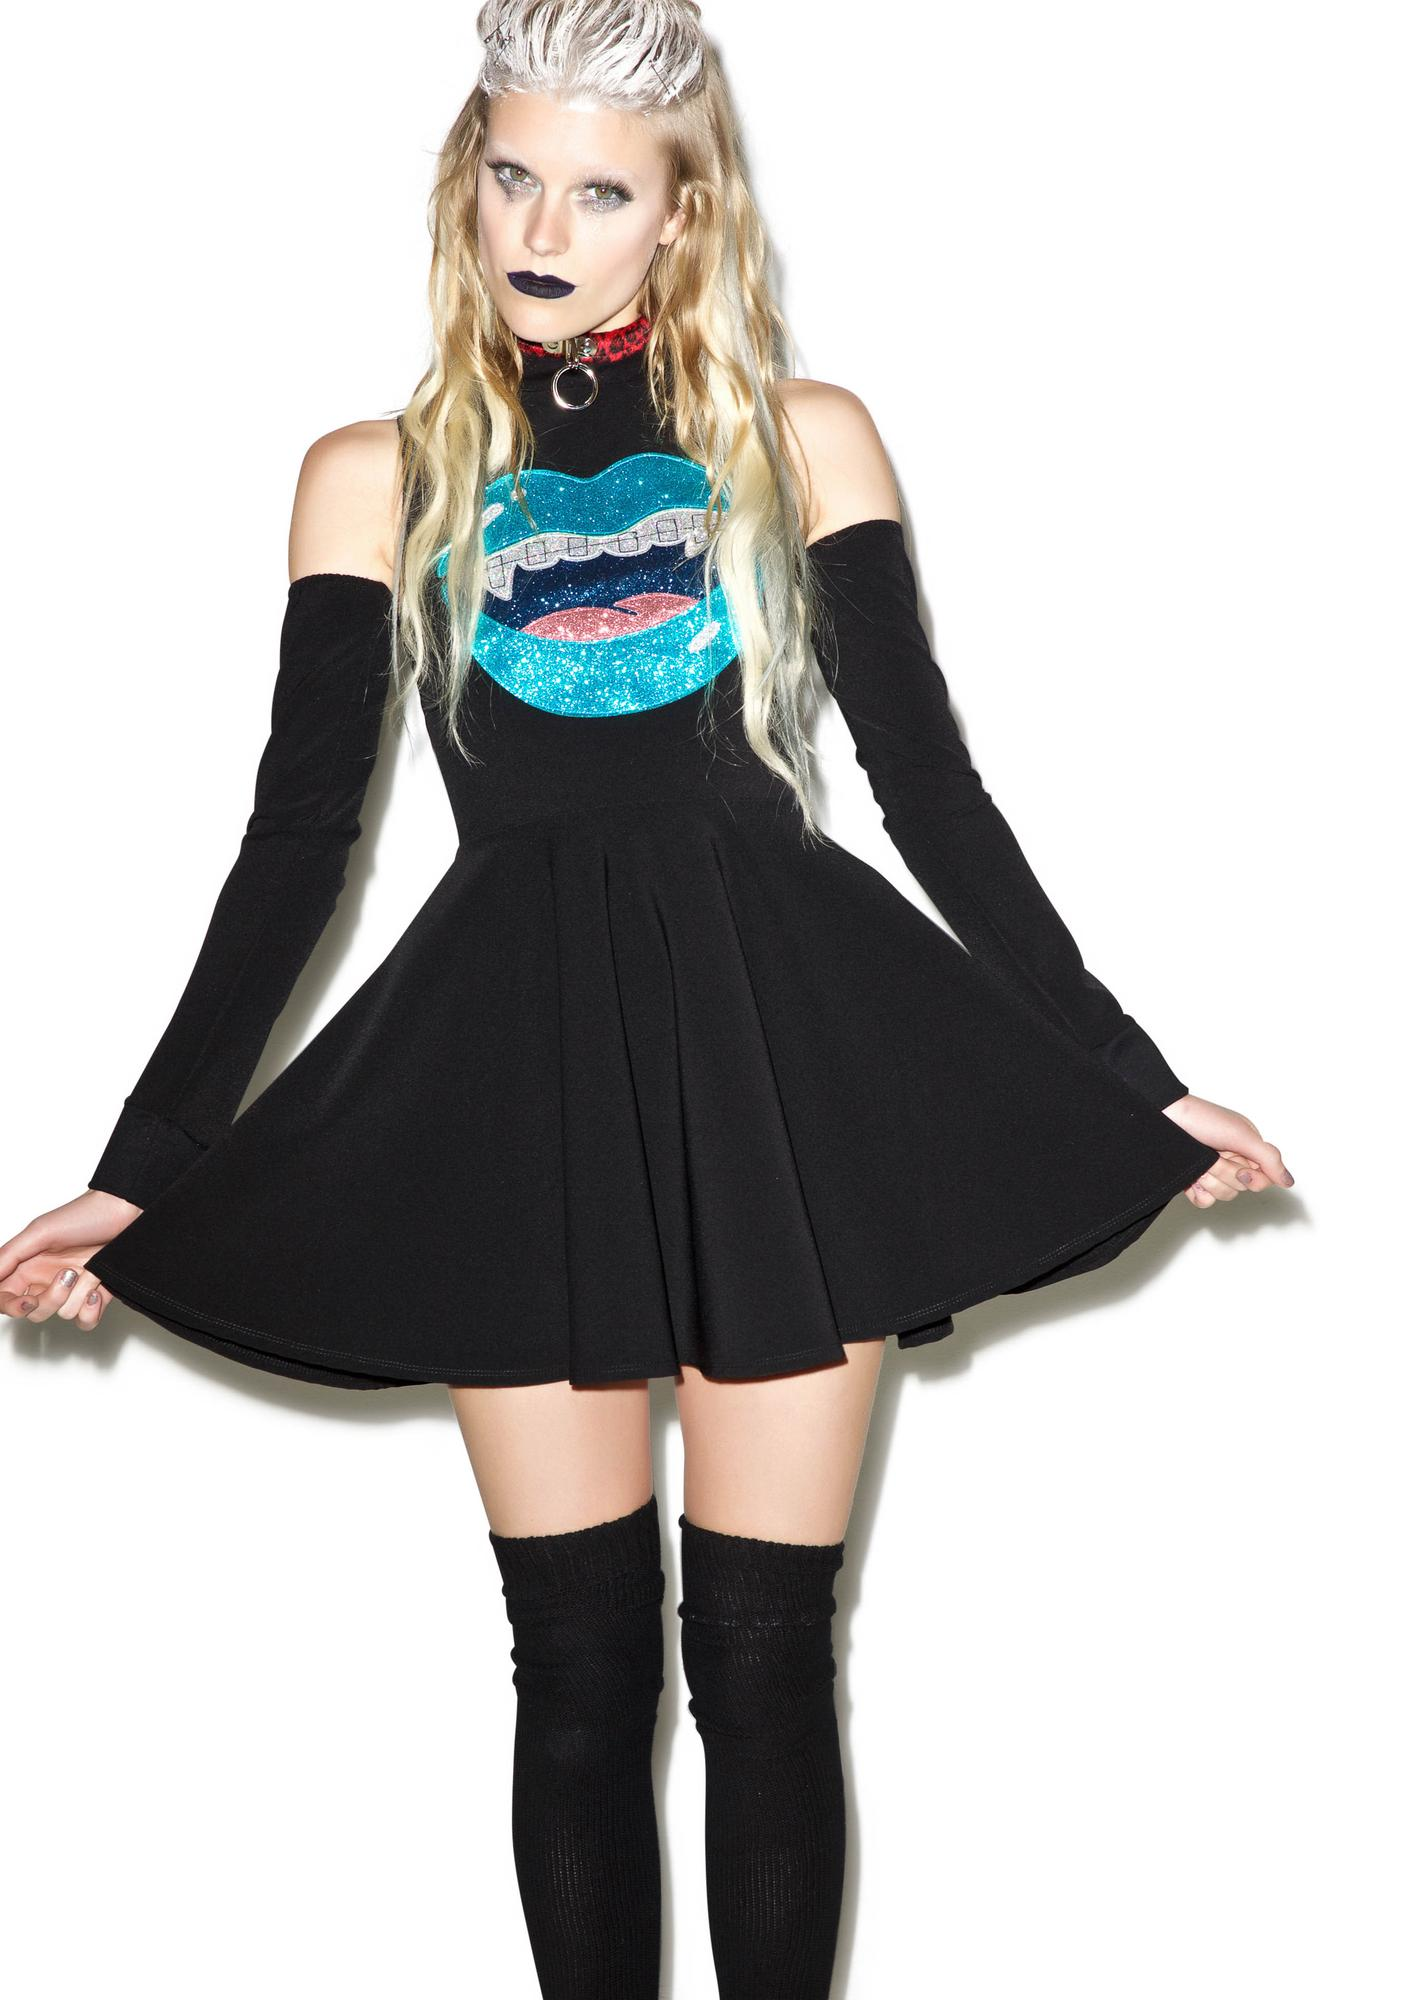 Indyanna Lilly Glitter Vamp Skater Dress